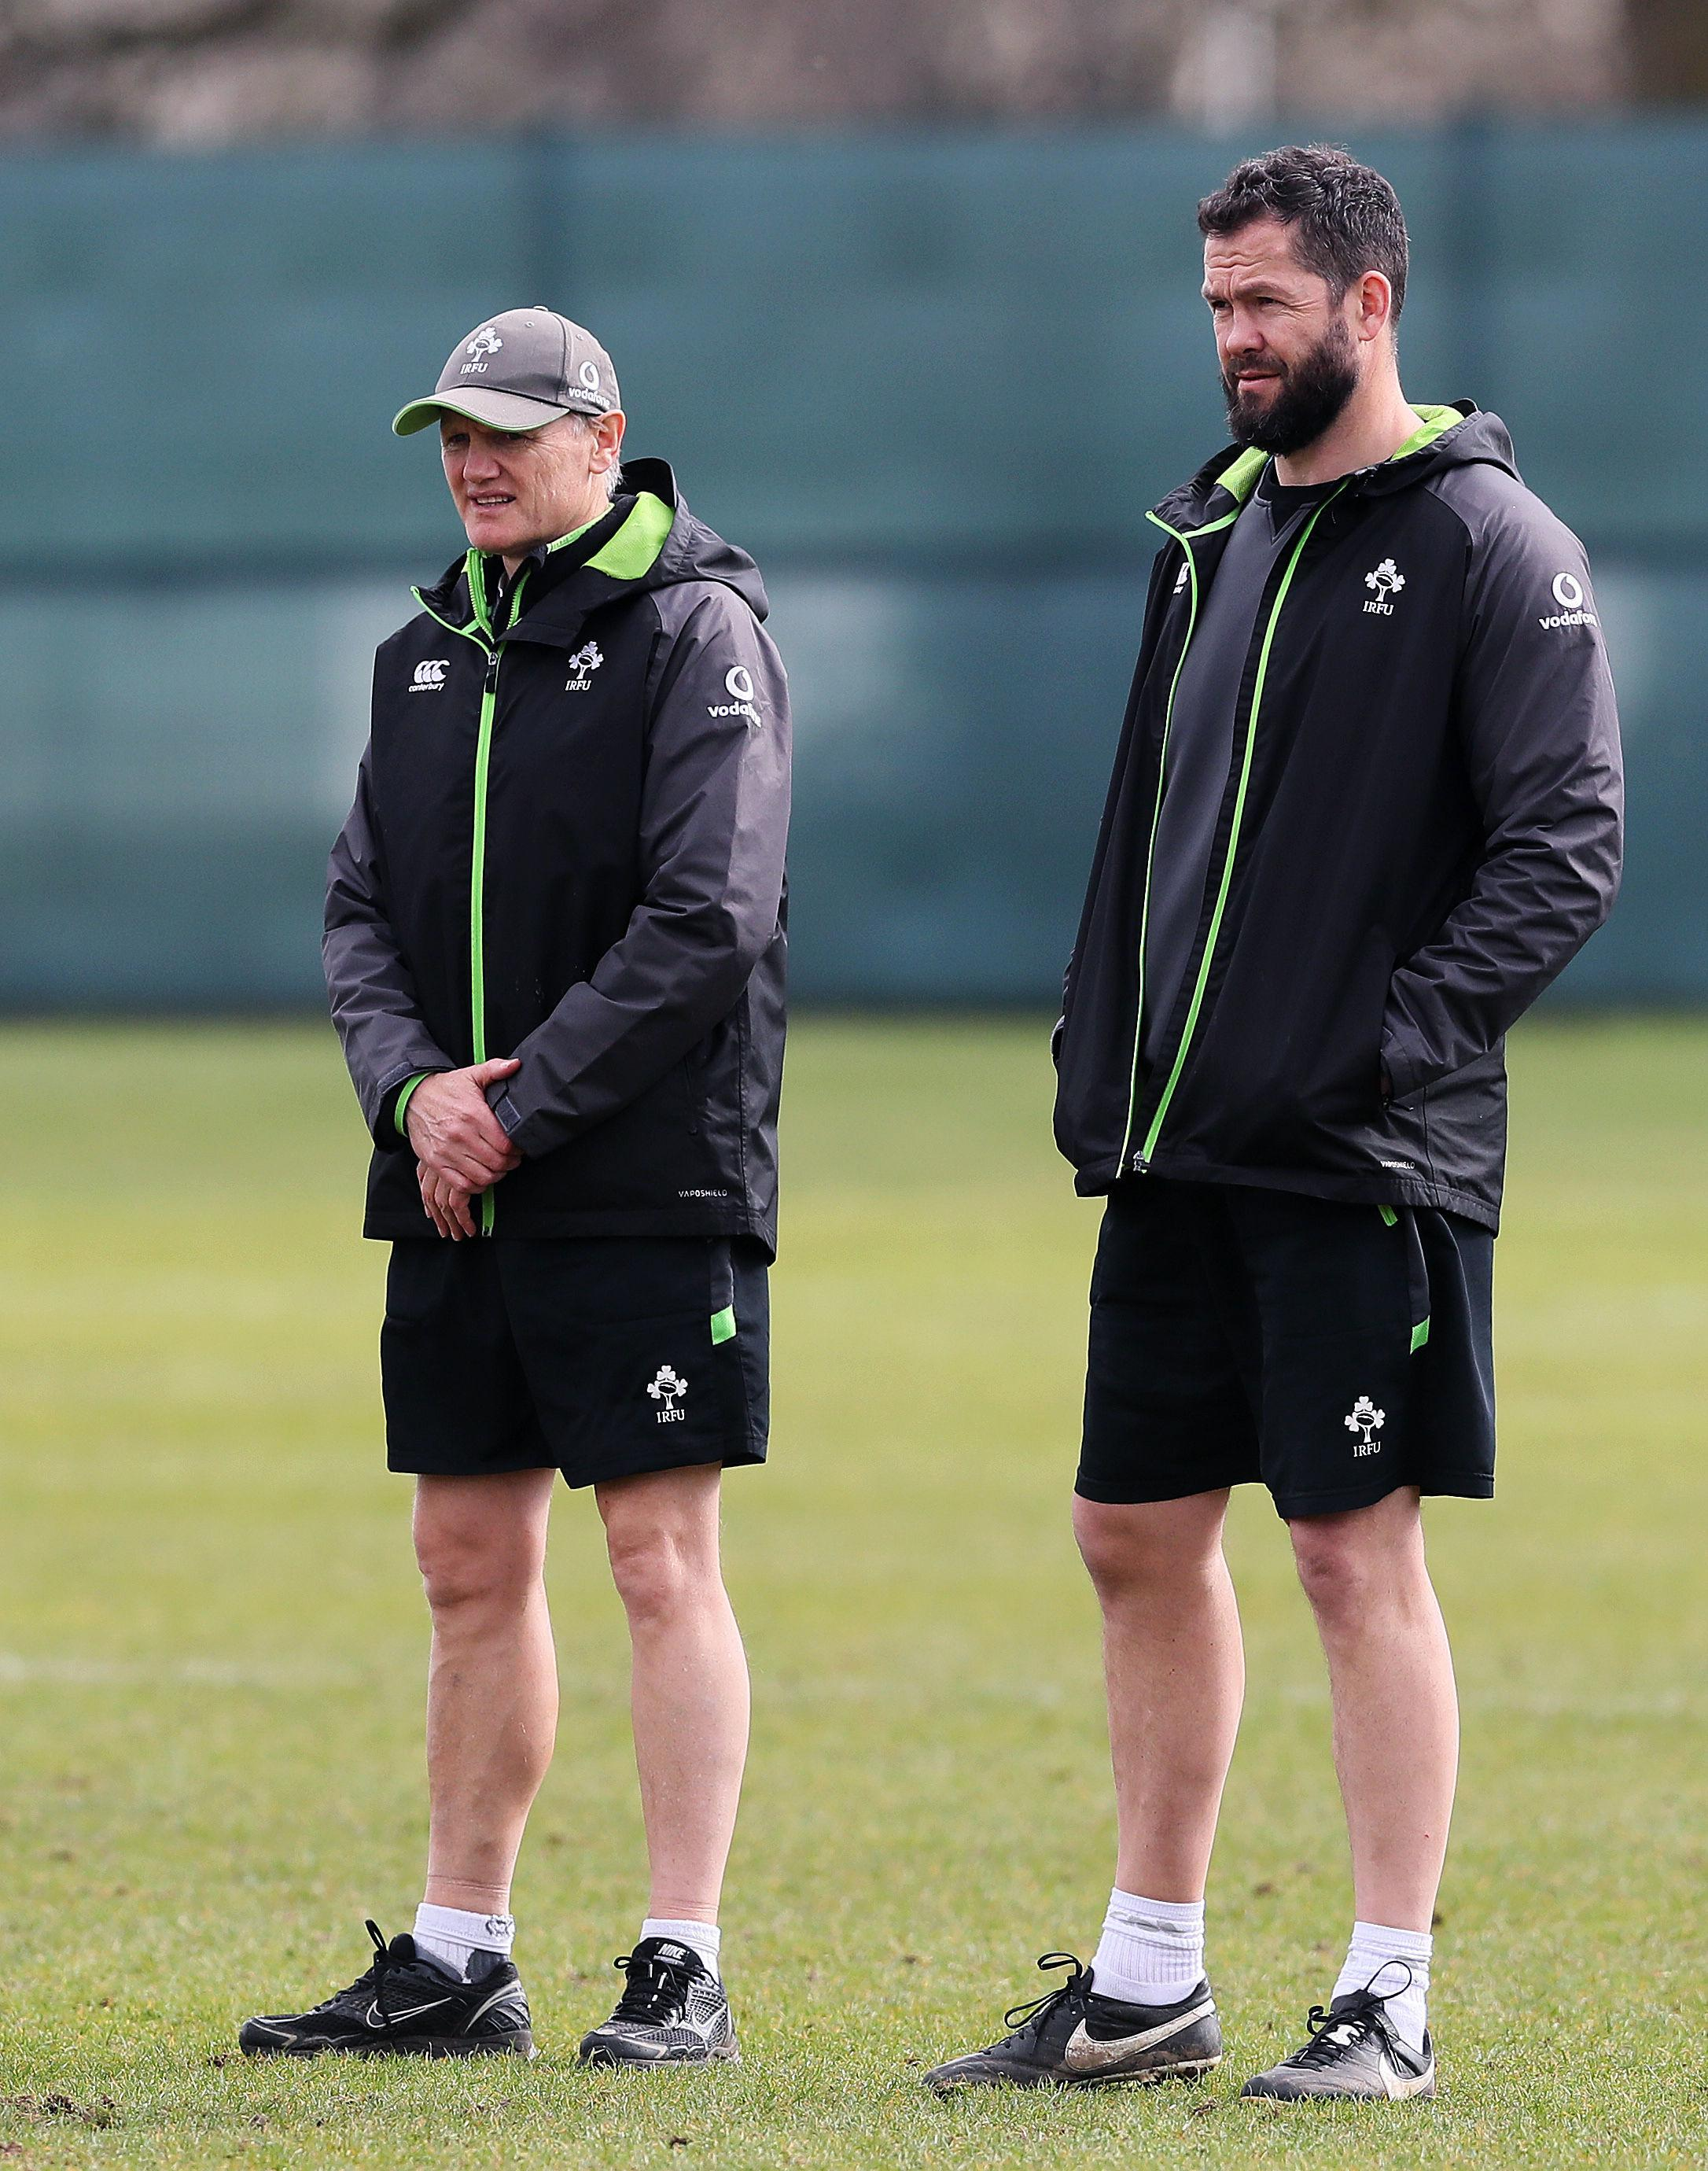 If Andy Farrell has soaked up some of Joe Schmidt's coaching methods, Ireland will be in a good position